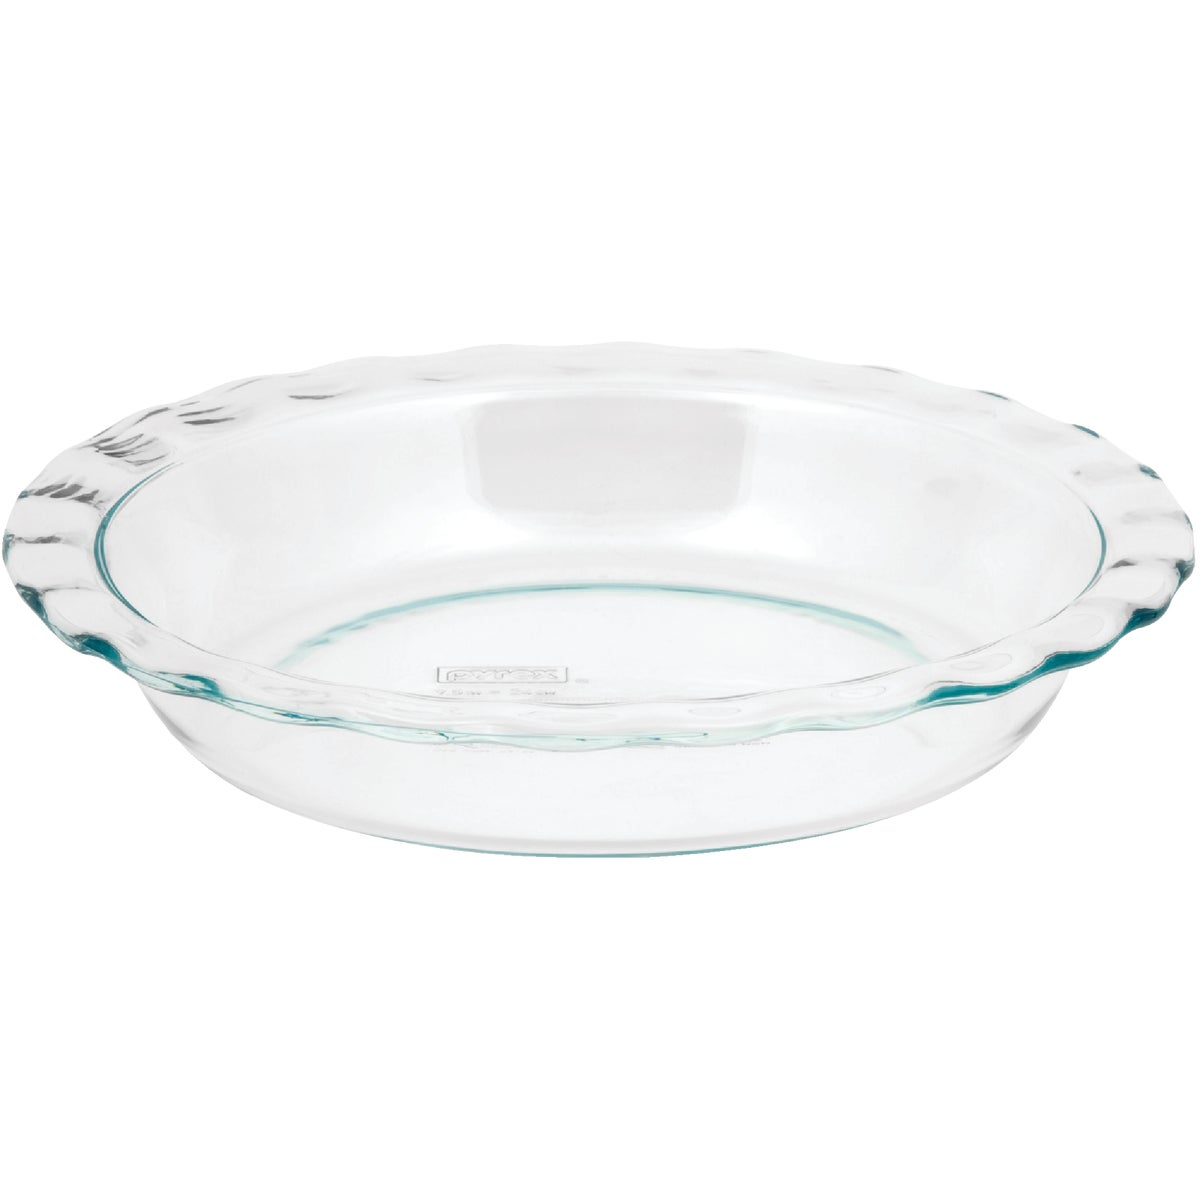 "9-1/2"" CLEAR PIE PLATE - 1085800 by World Kitchen"